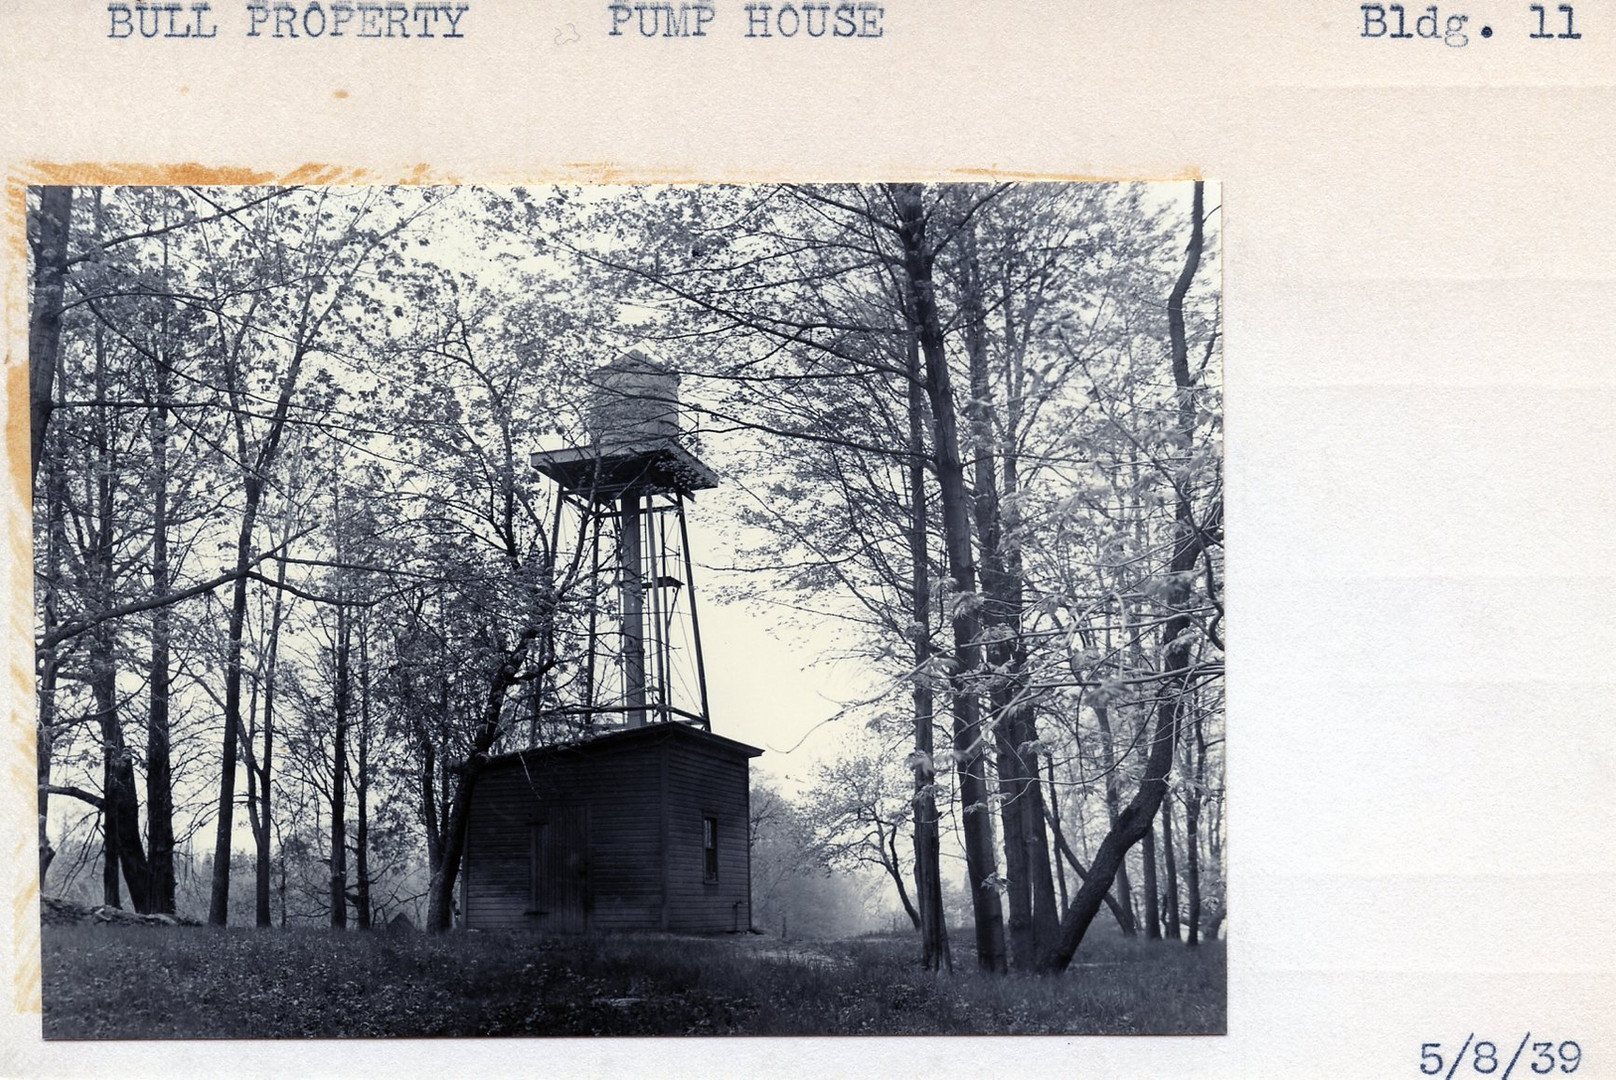 Bull Property, Pump House. Building #11, 5/8/39